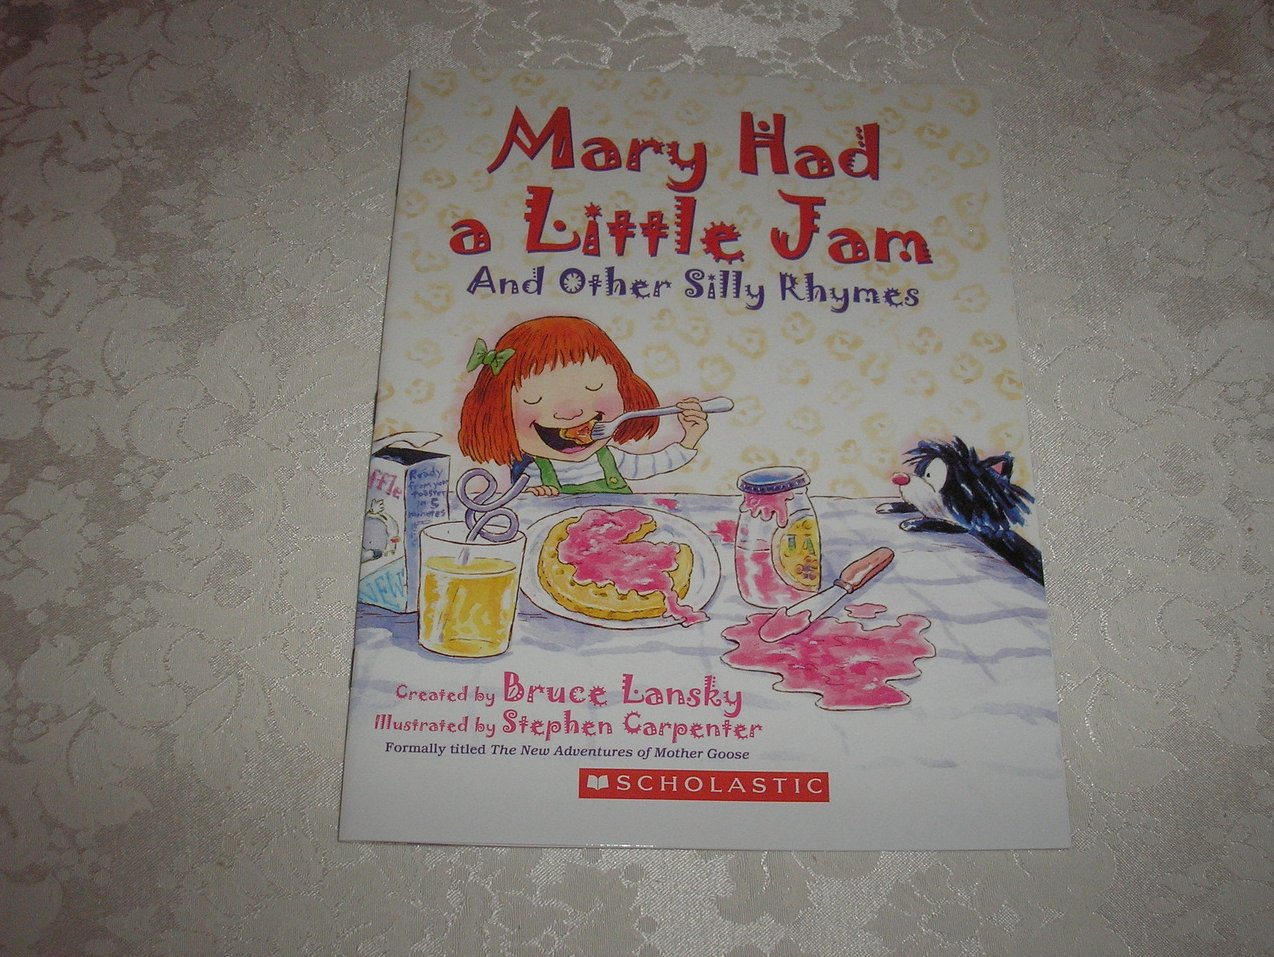 Mary Had a Little Jam And Other Silly Rhymes brand new sc Bruce Lansky